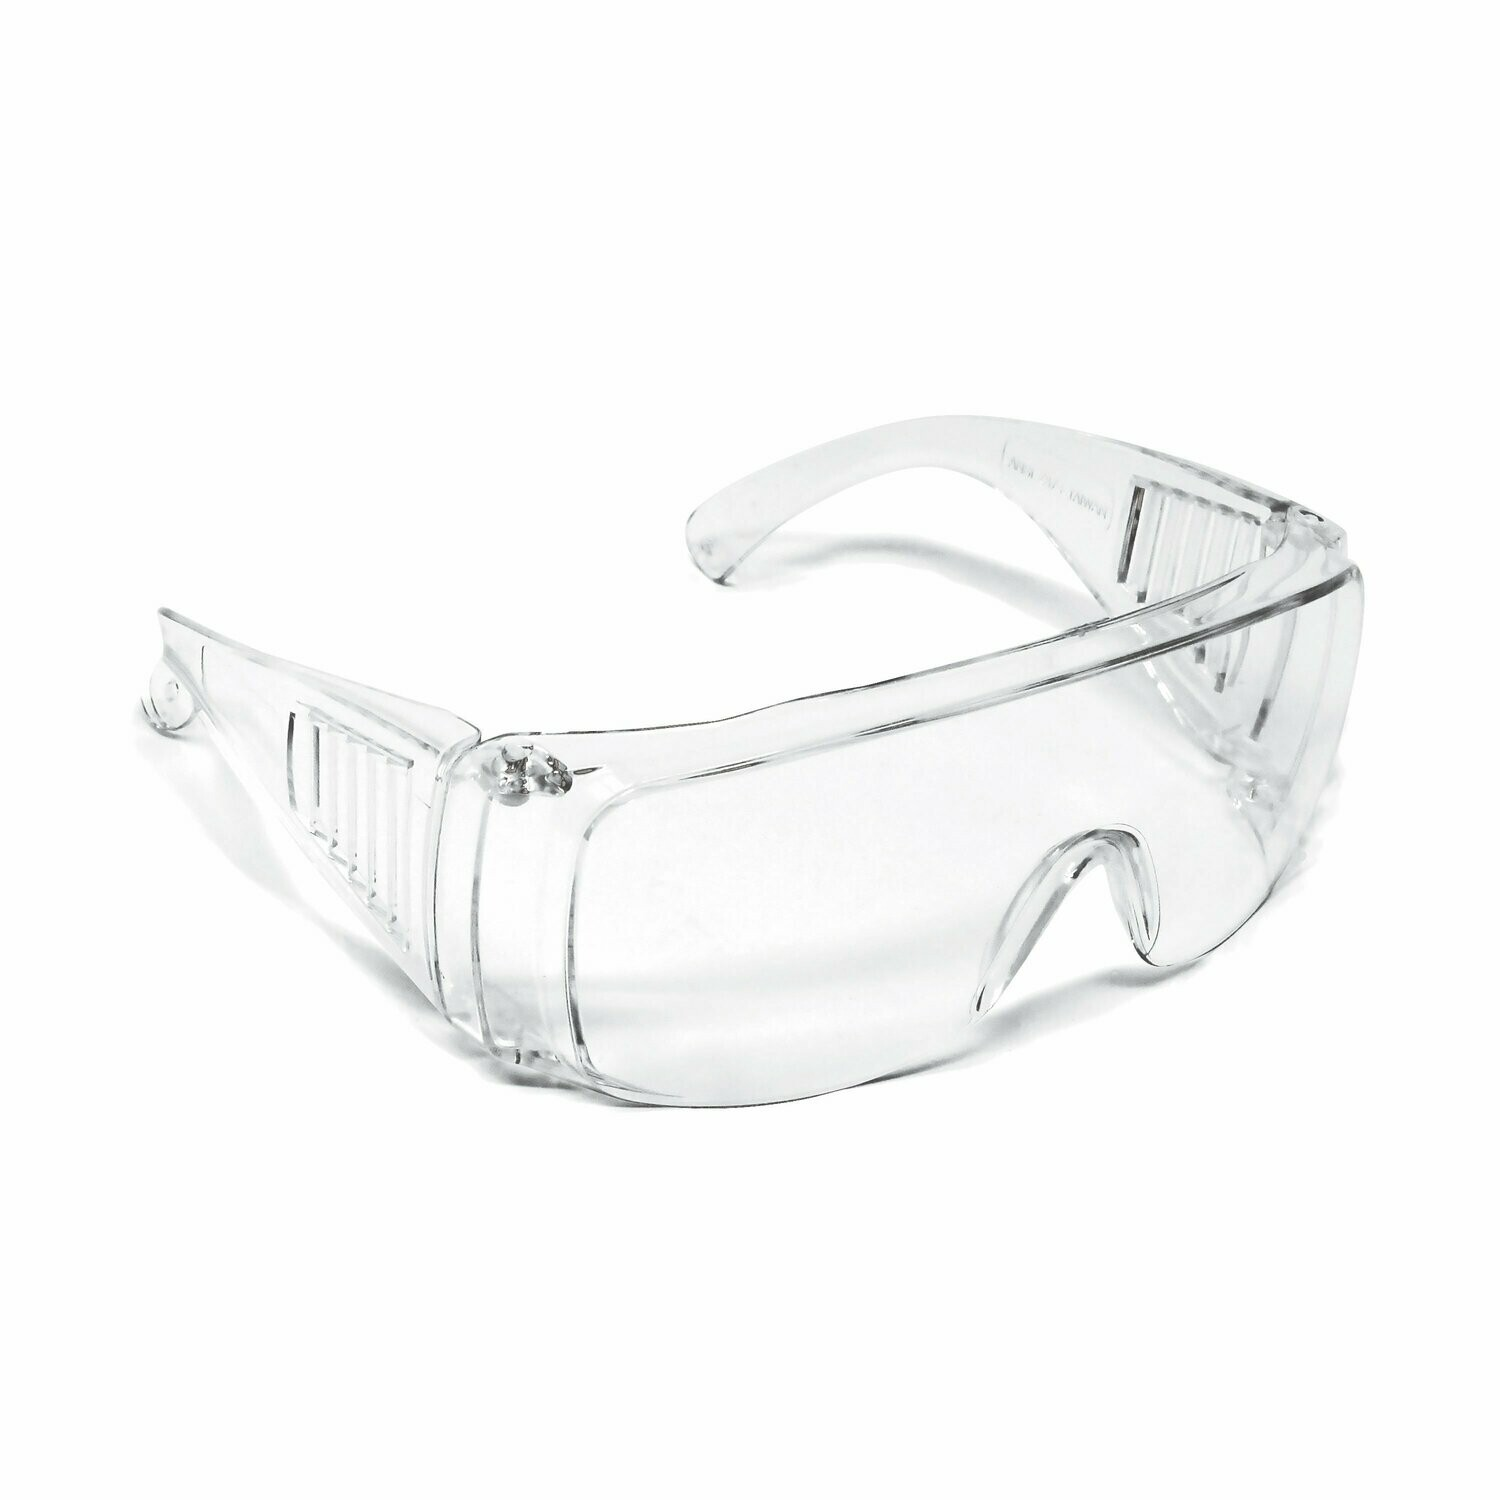 Clear Safety Glasses (12 pack)